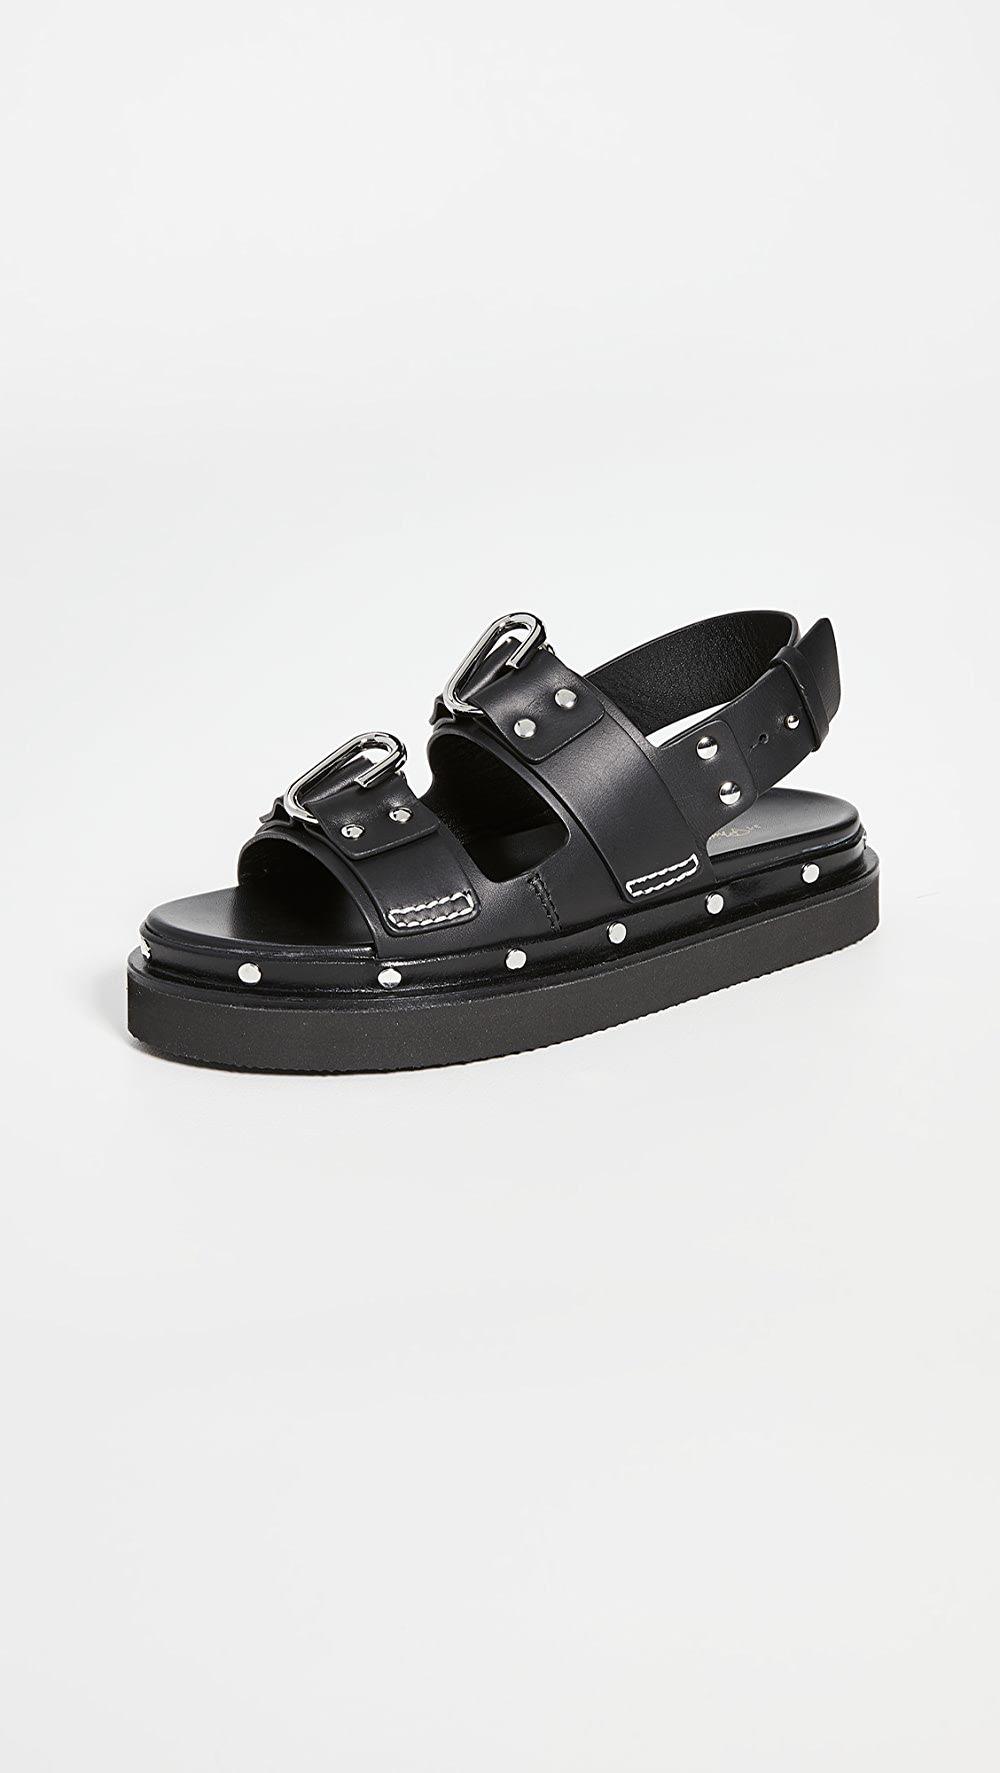 Aspiring 3.1 Phillip Lim - Alix Flatform Sandals Cheapest Price From Our Site